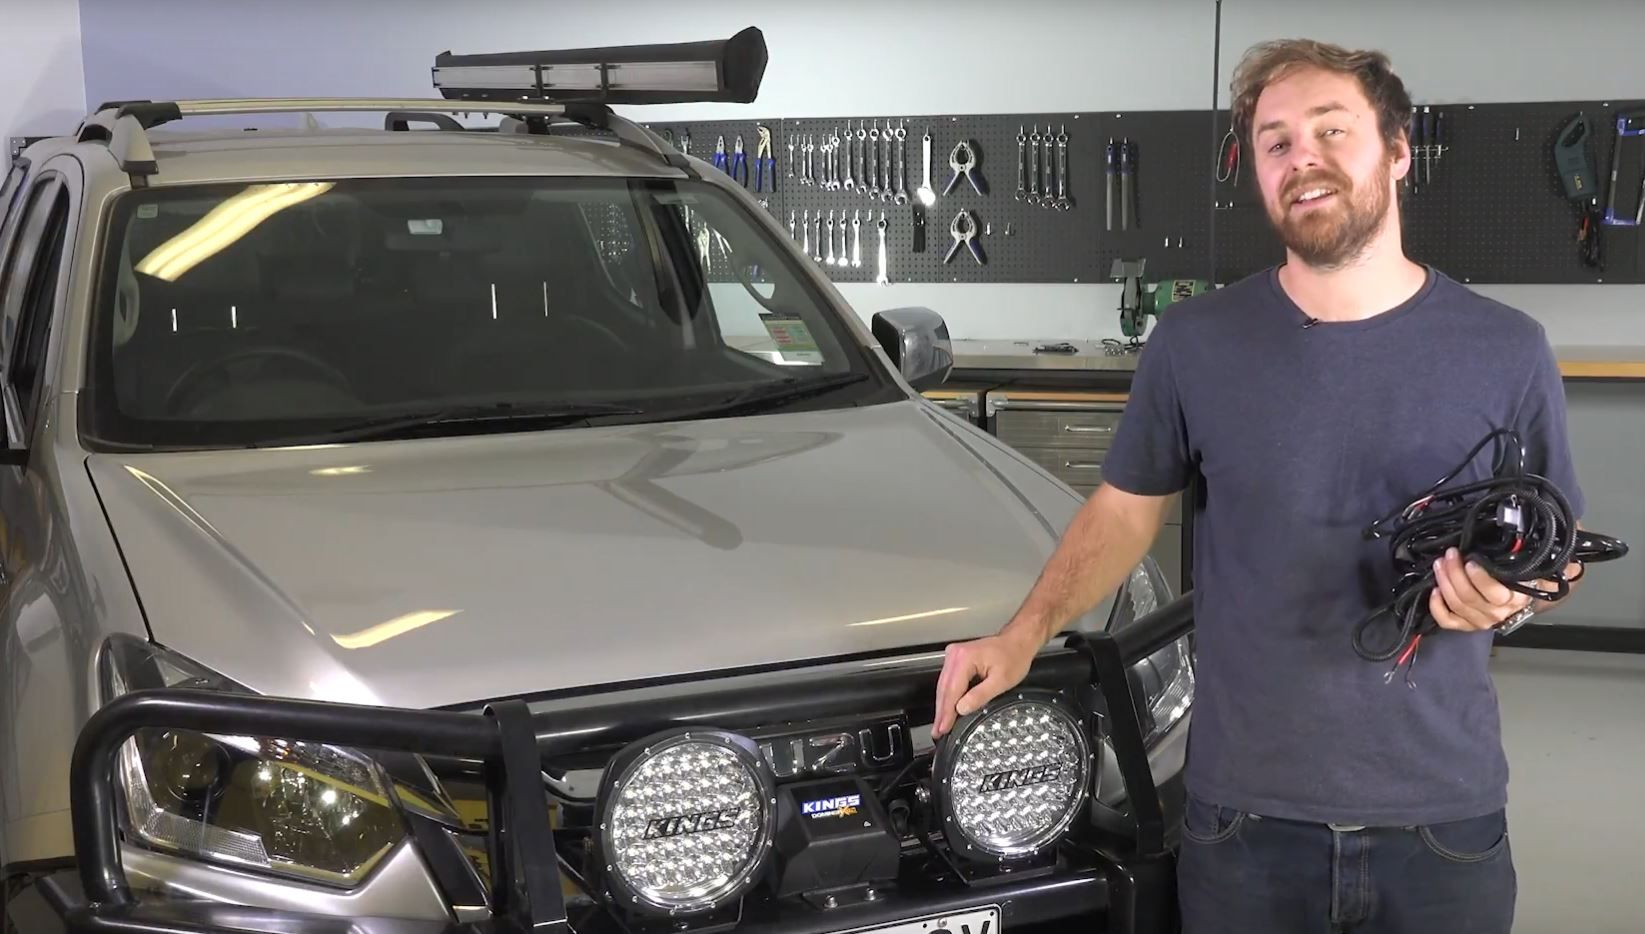 4Wd Supacentre Roof Rack Installation you may be the most organized at your camp, but you are